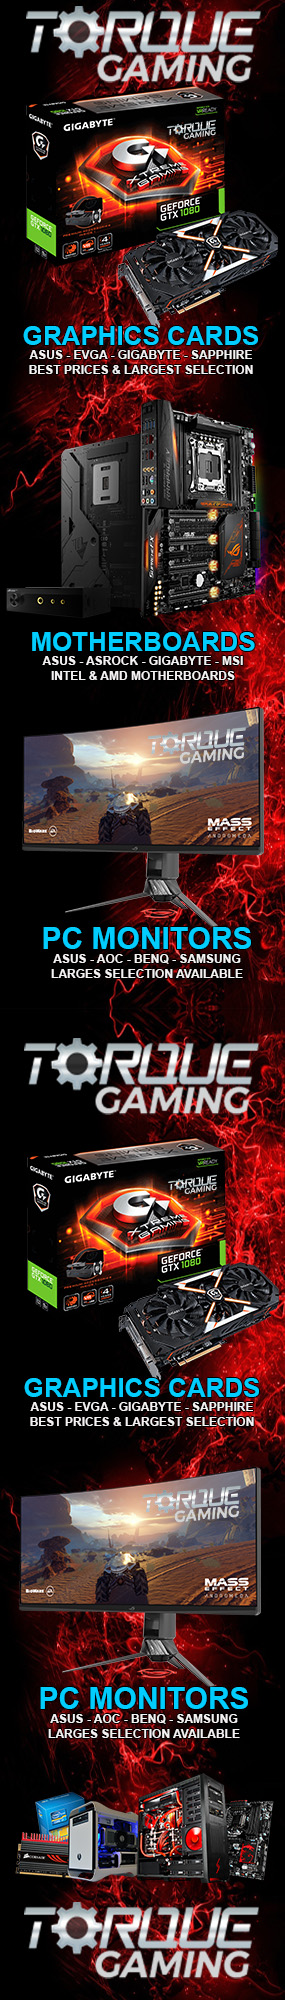 www.TORQUEGAMING.ie IRELANDs GAMING PC SPECIALISTS